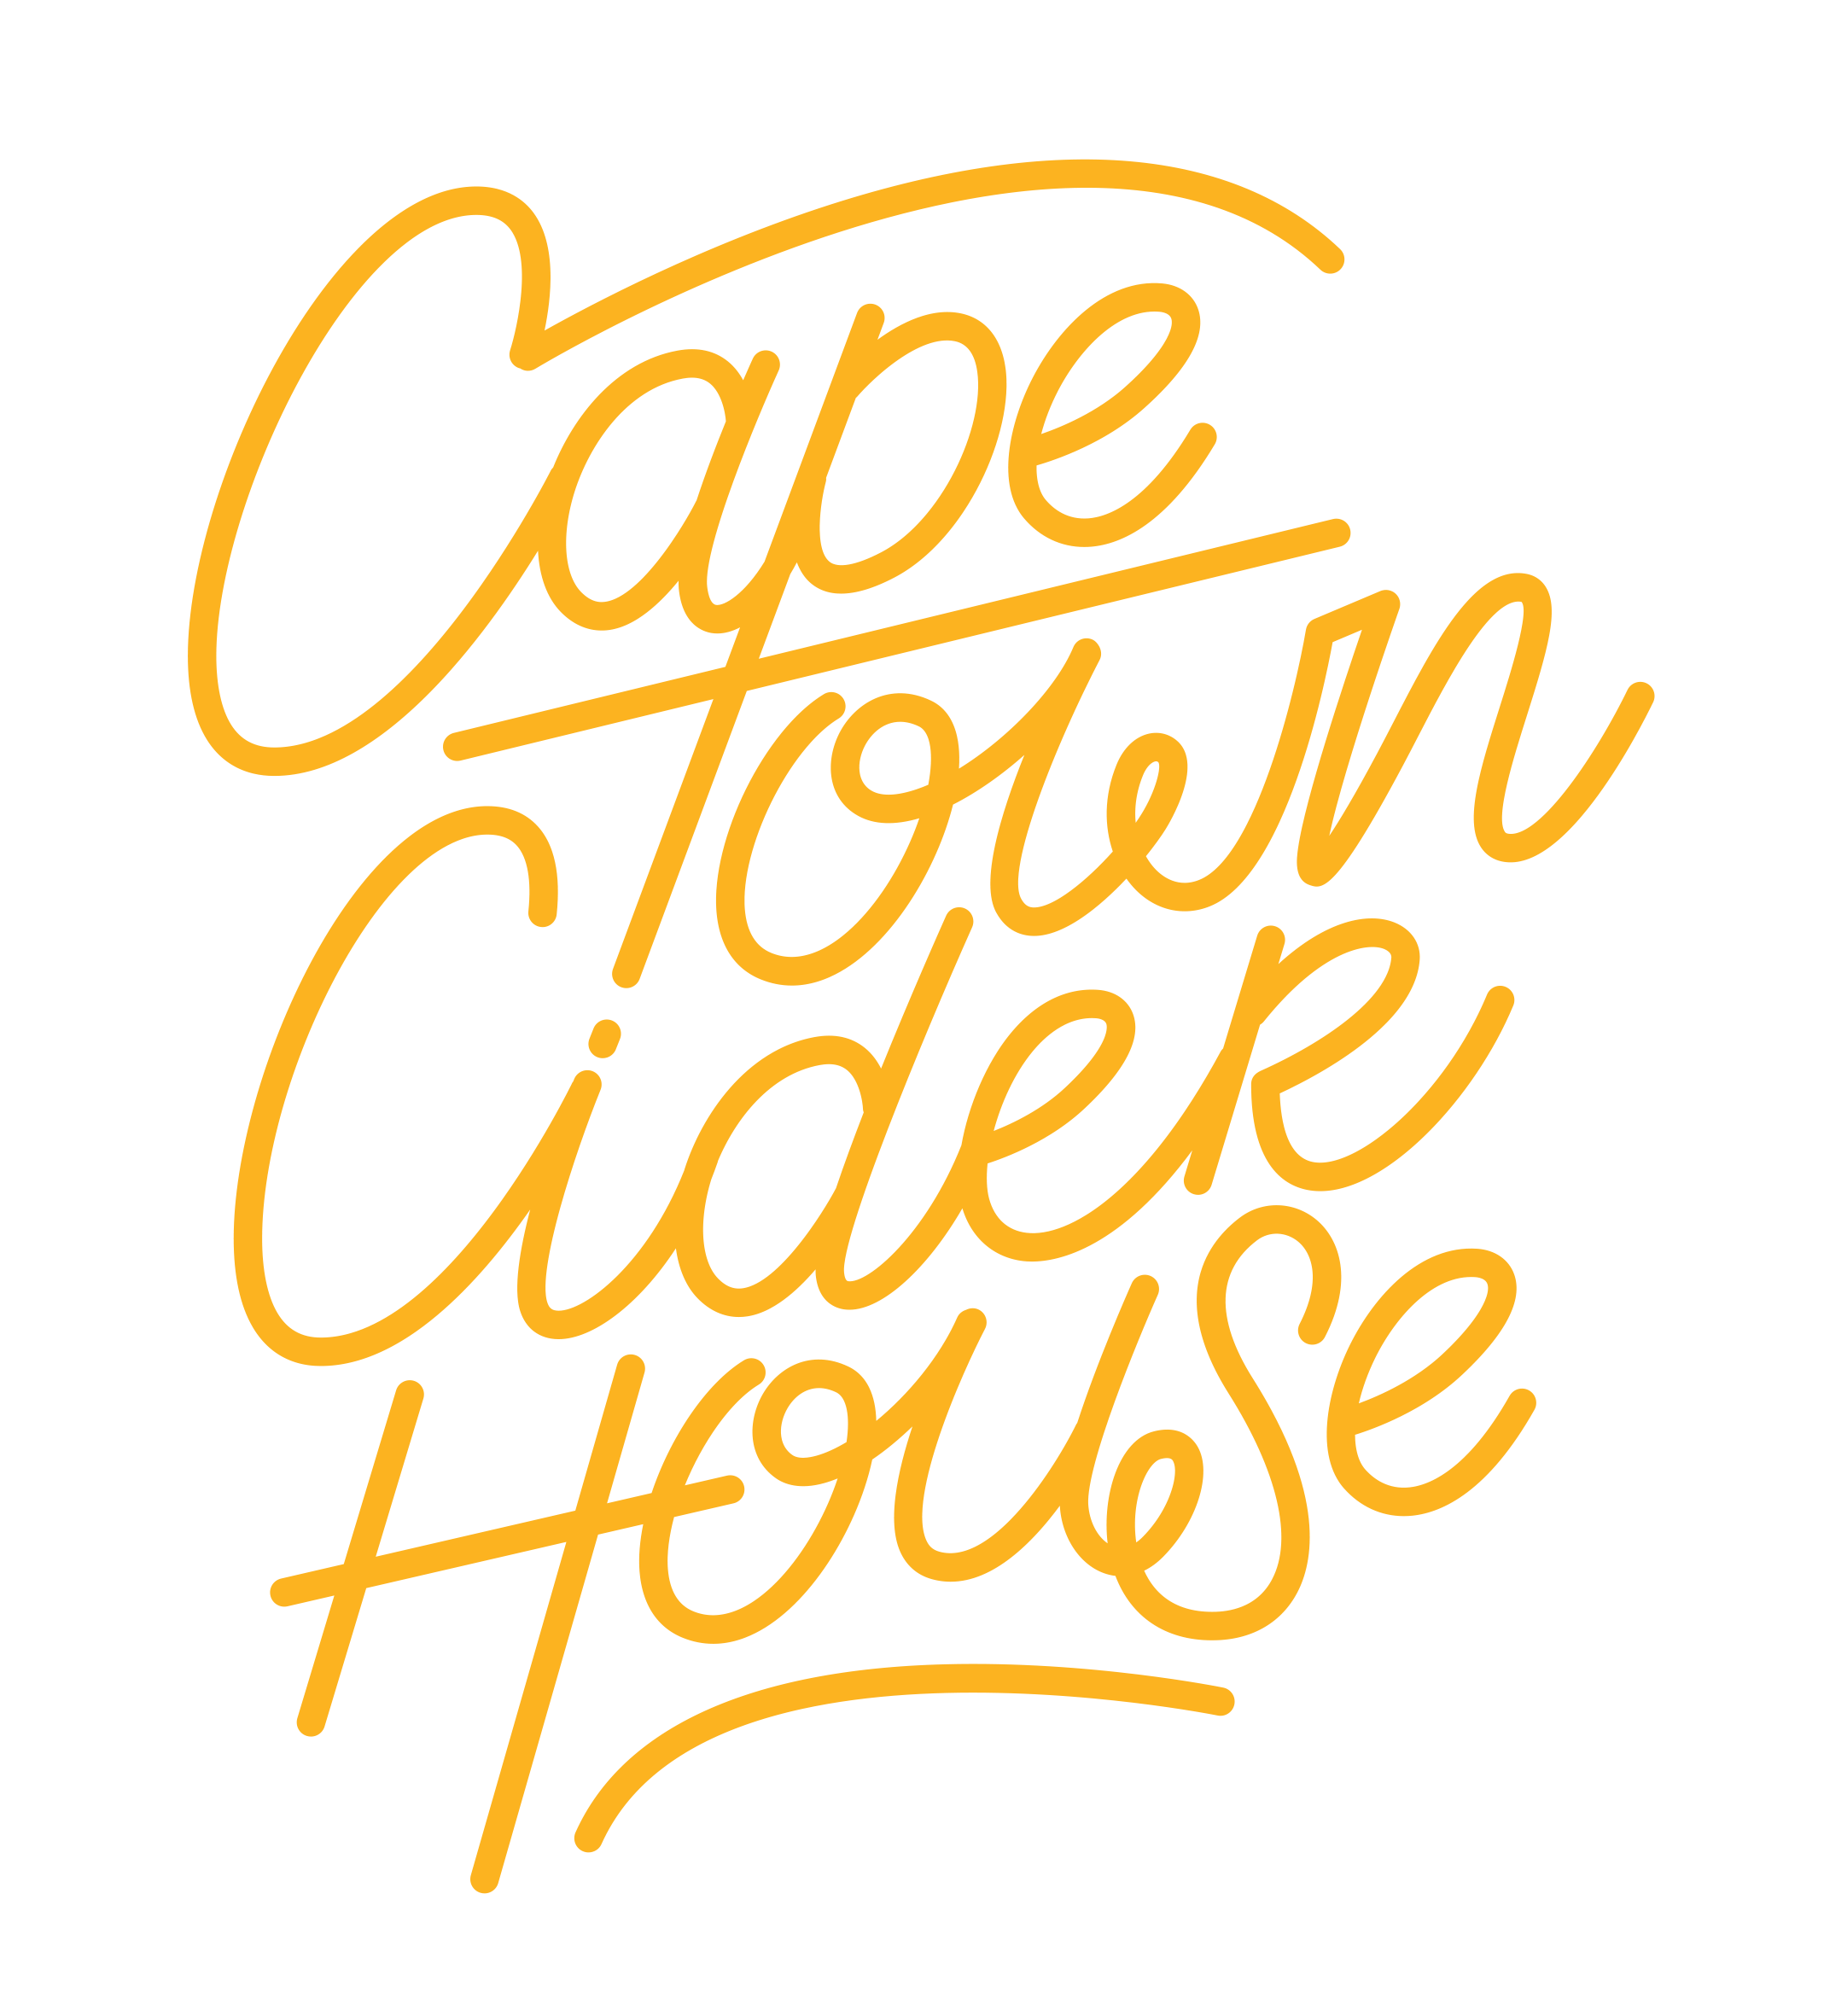 Cape Town Cider House